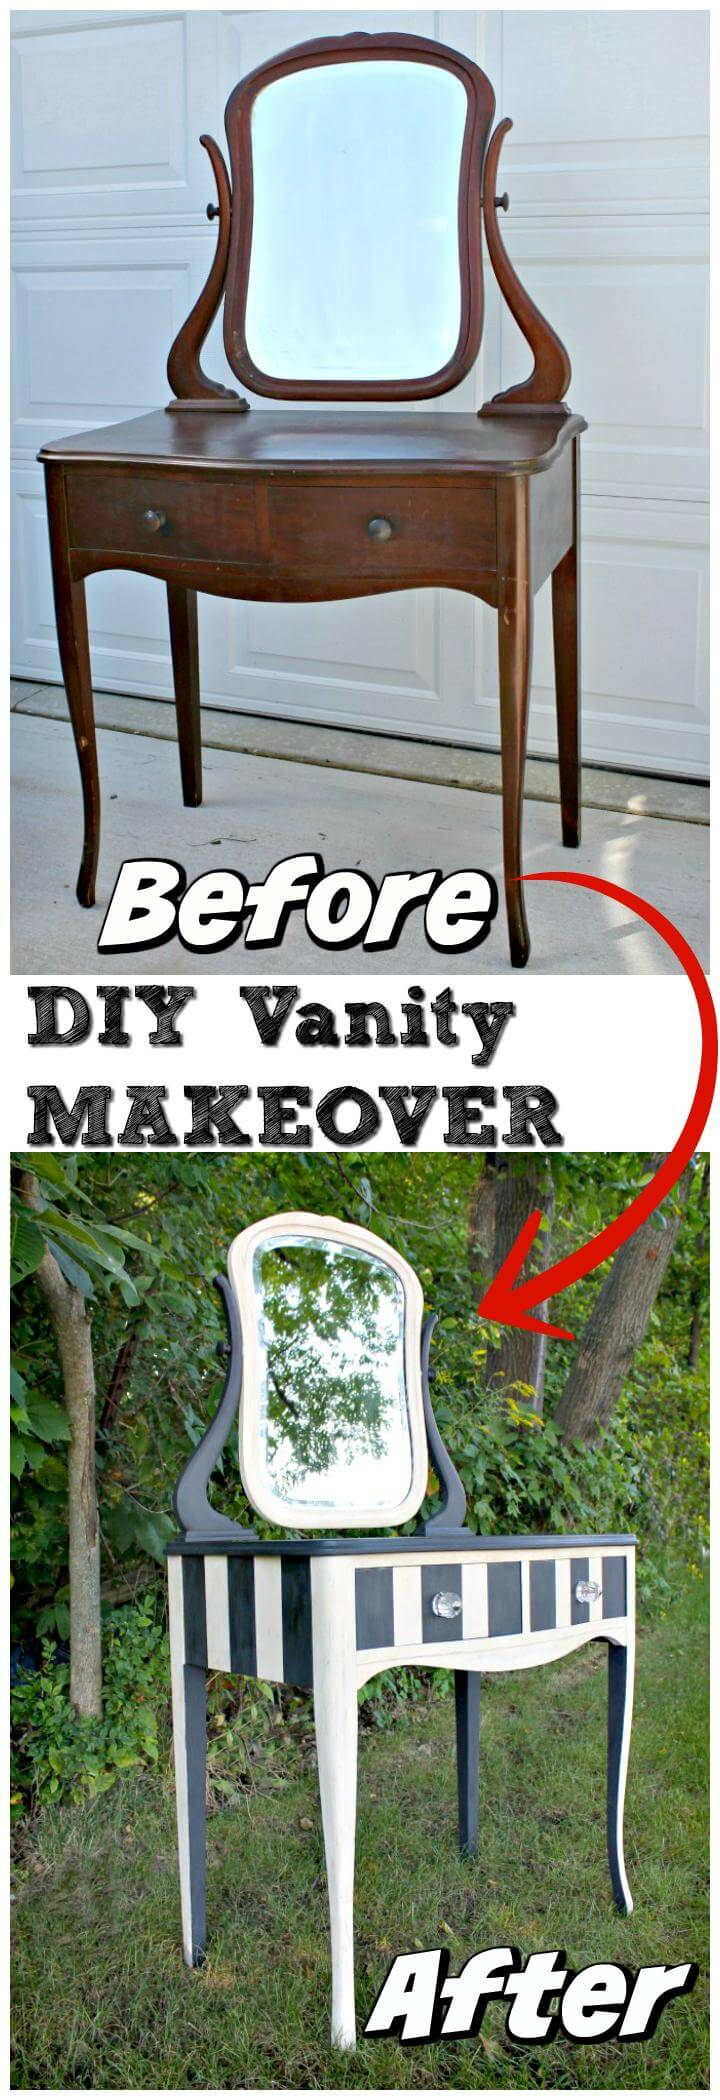 20 Diy Makeup Vanity Tutorials Diy Your Own Makeup